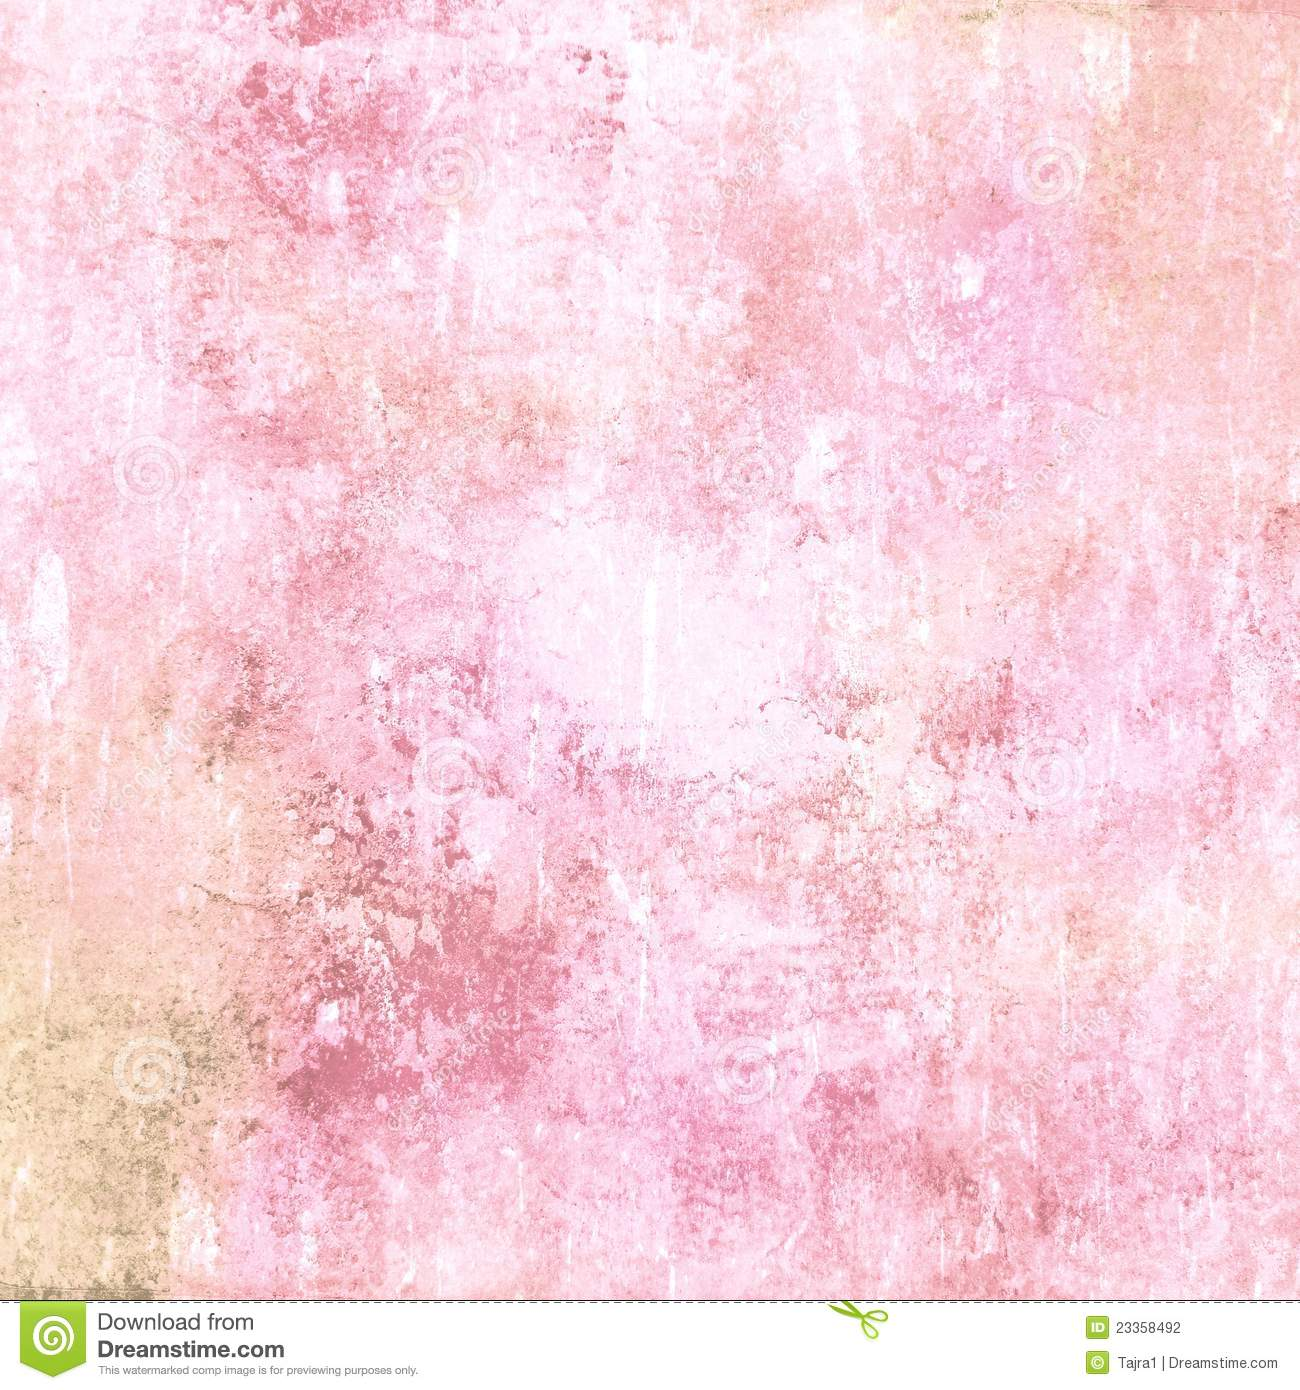 Grunge pink background stock photo. Image of color, grungy ...